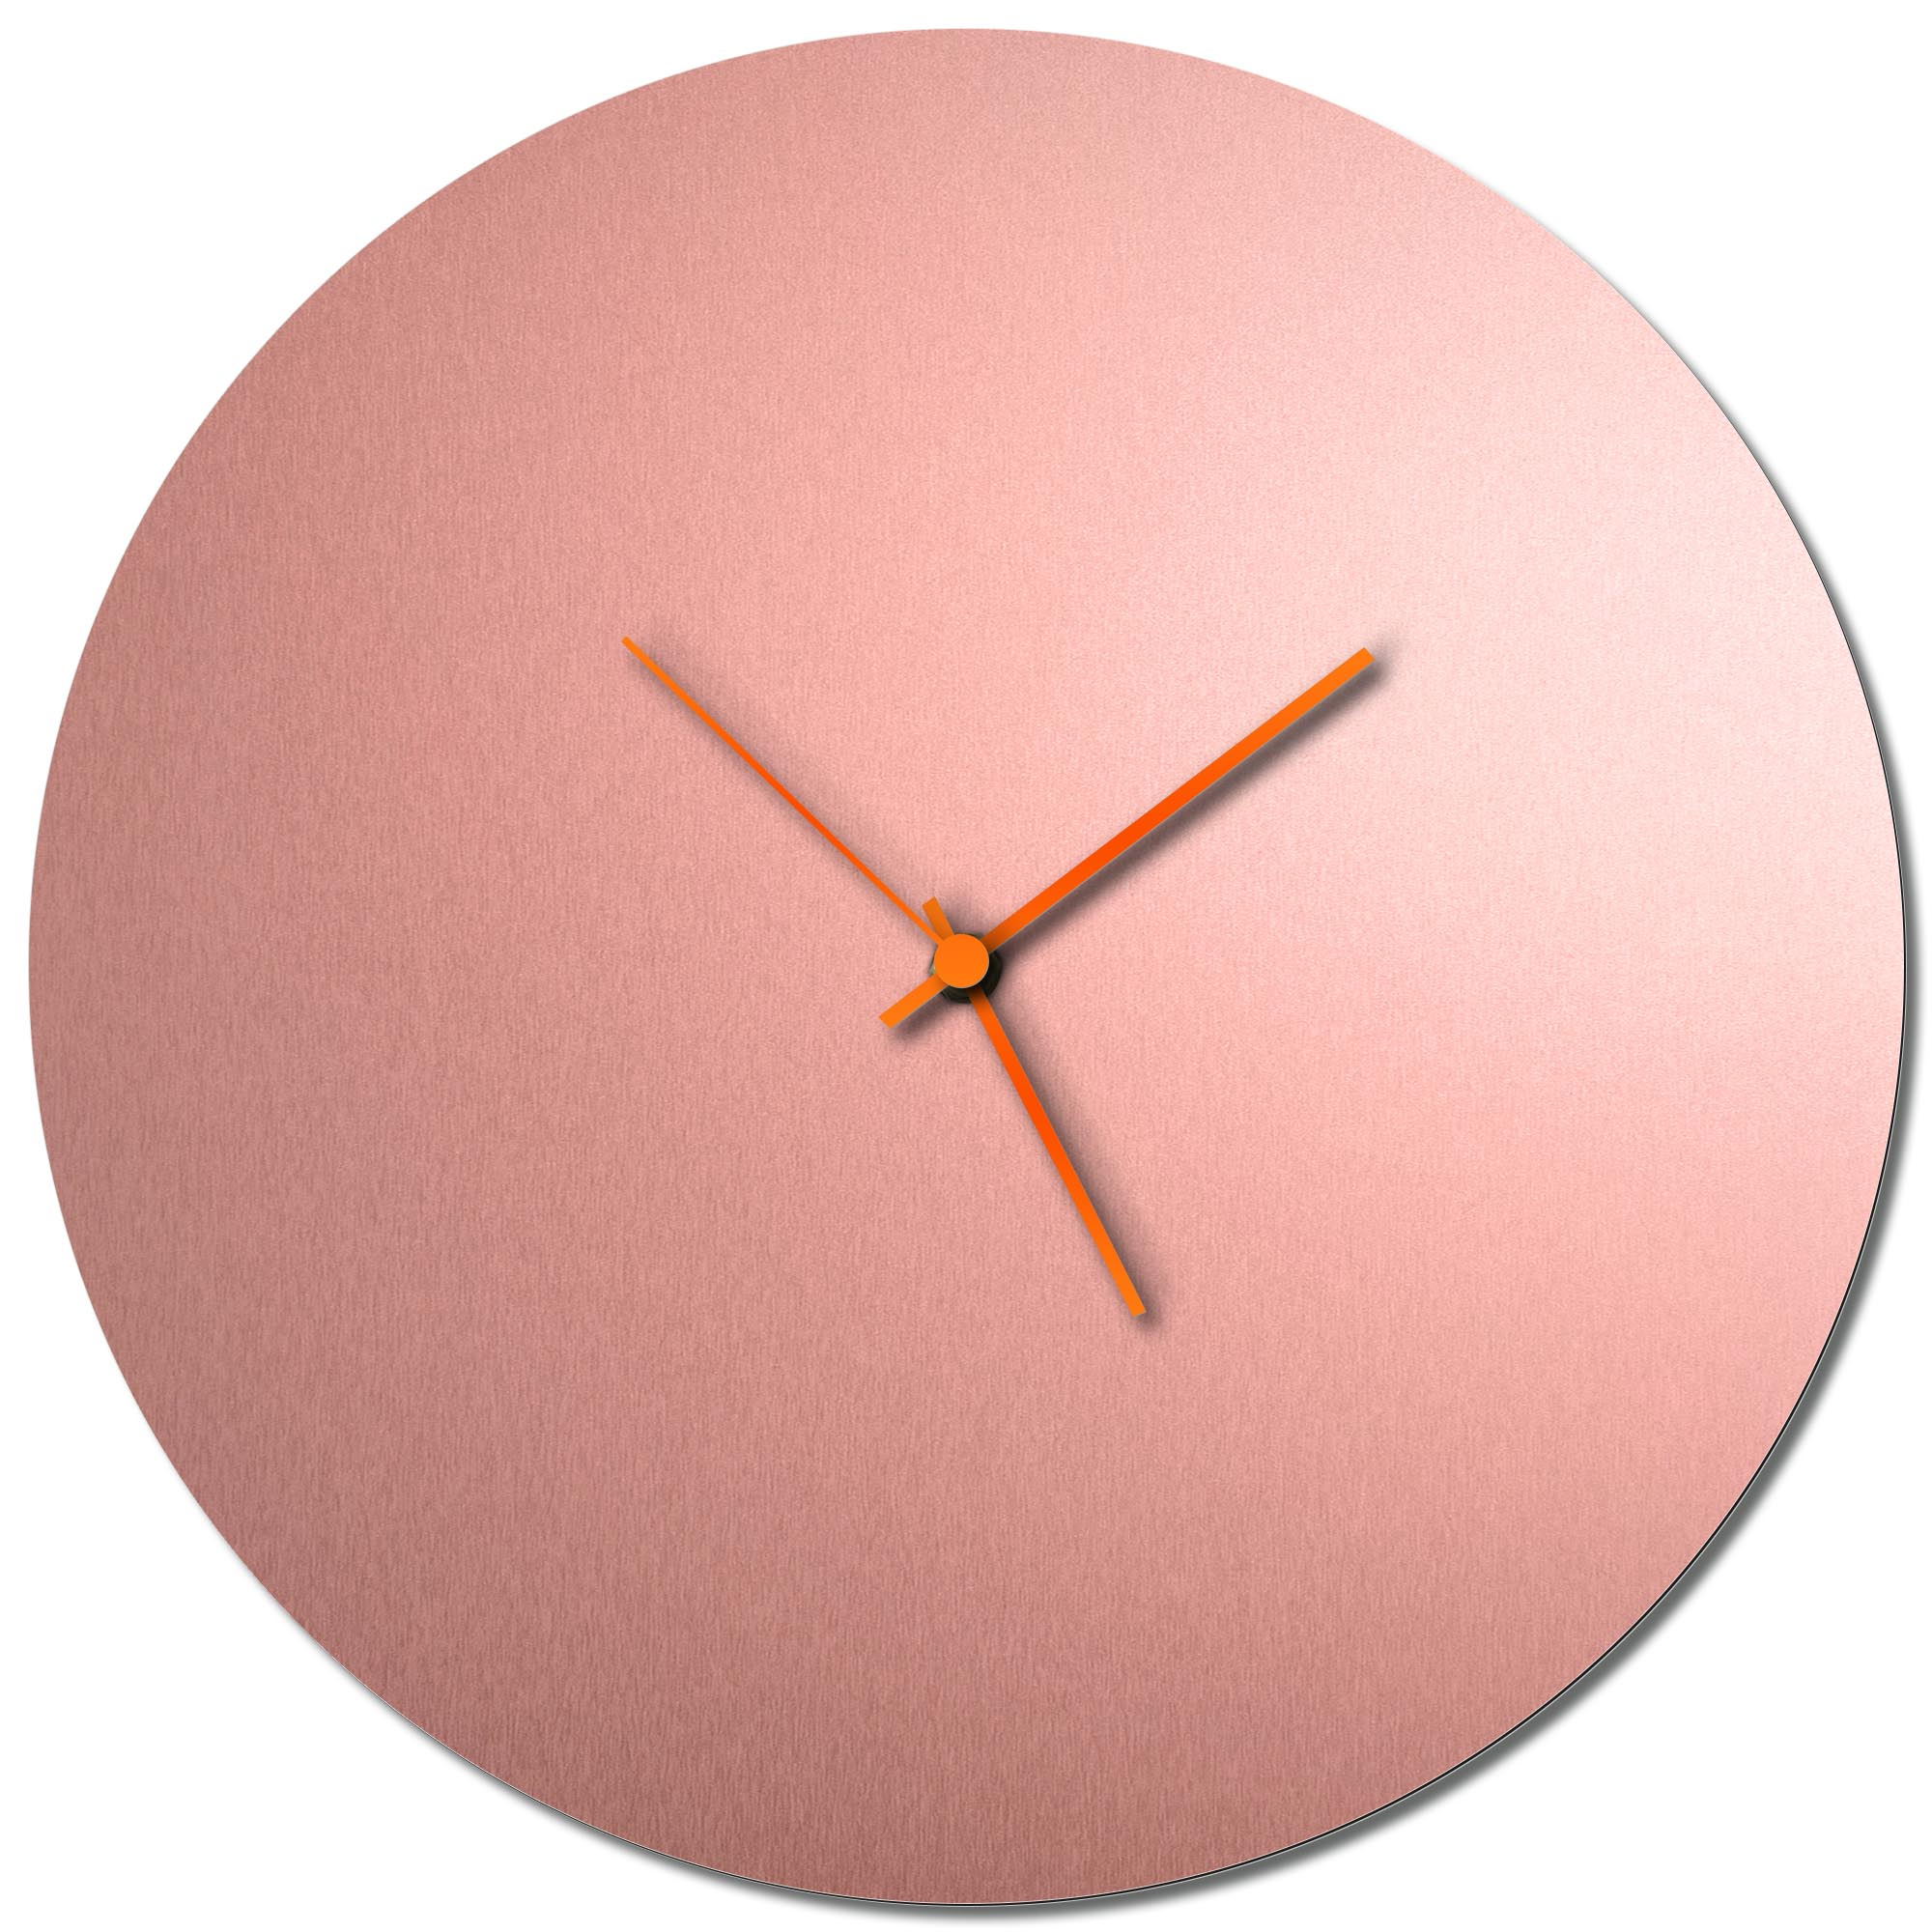 Adam Schwoeppe 'Coppersmith Circle Clock Large Orange' Midcentury Modern Style Wall Clock